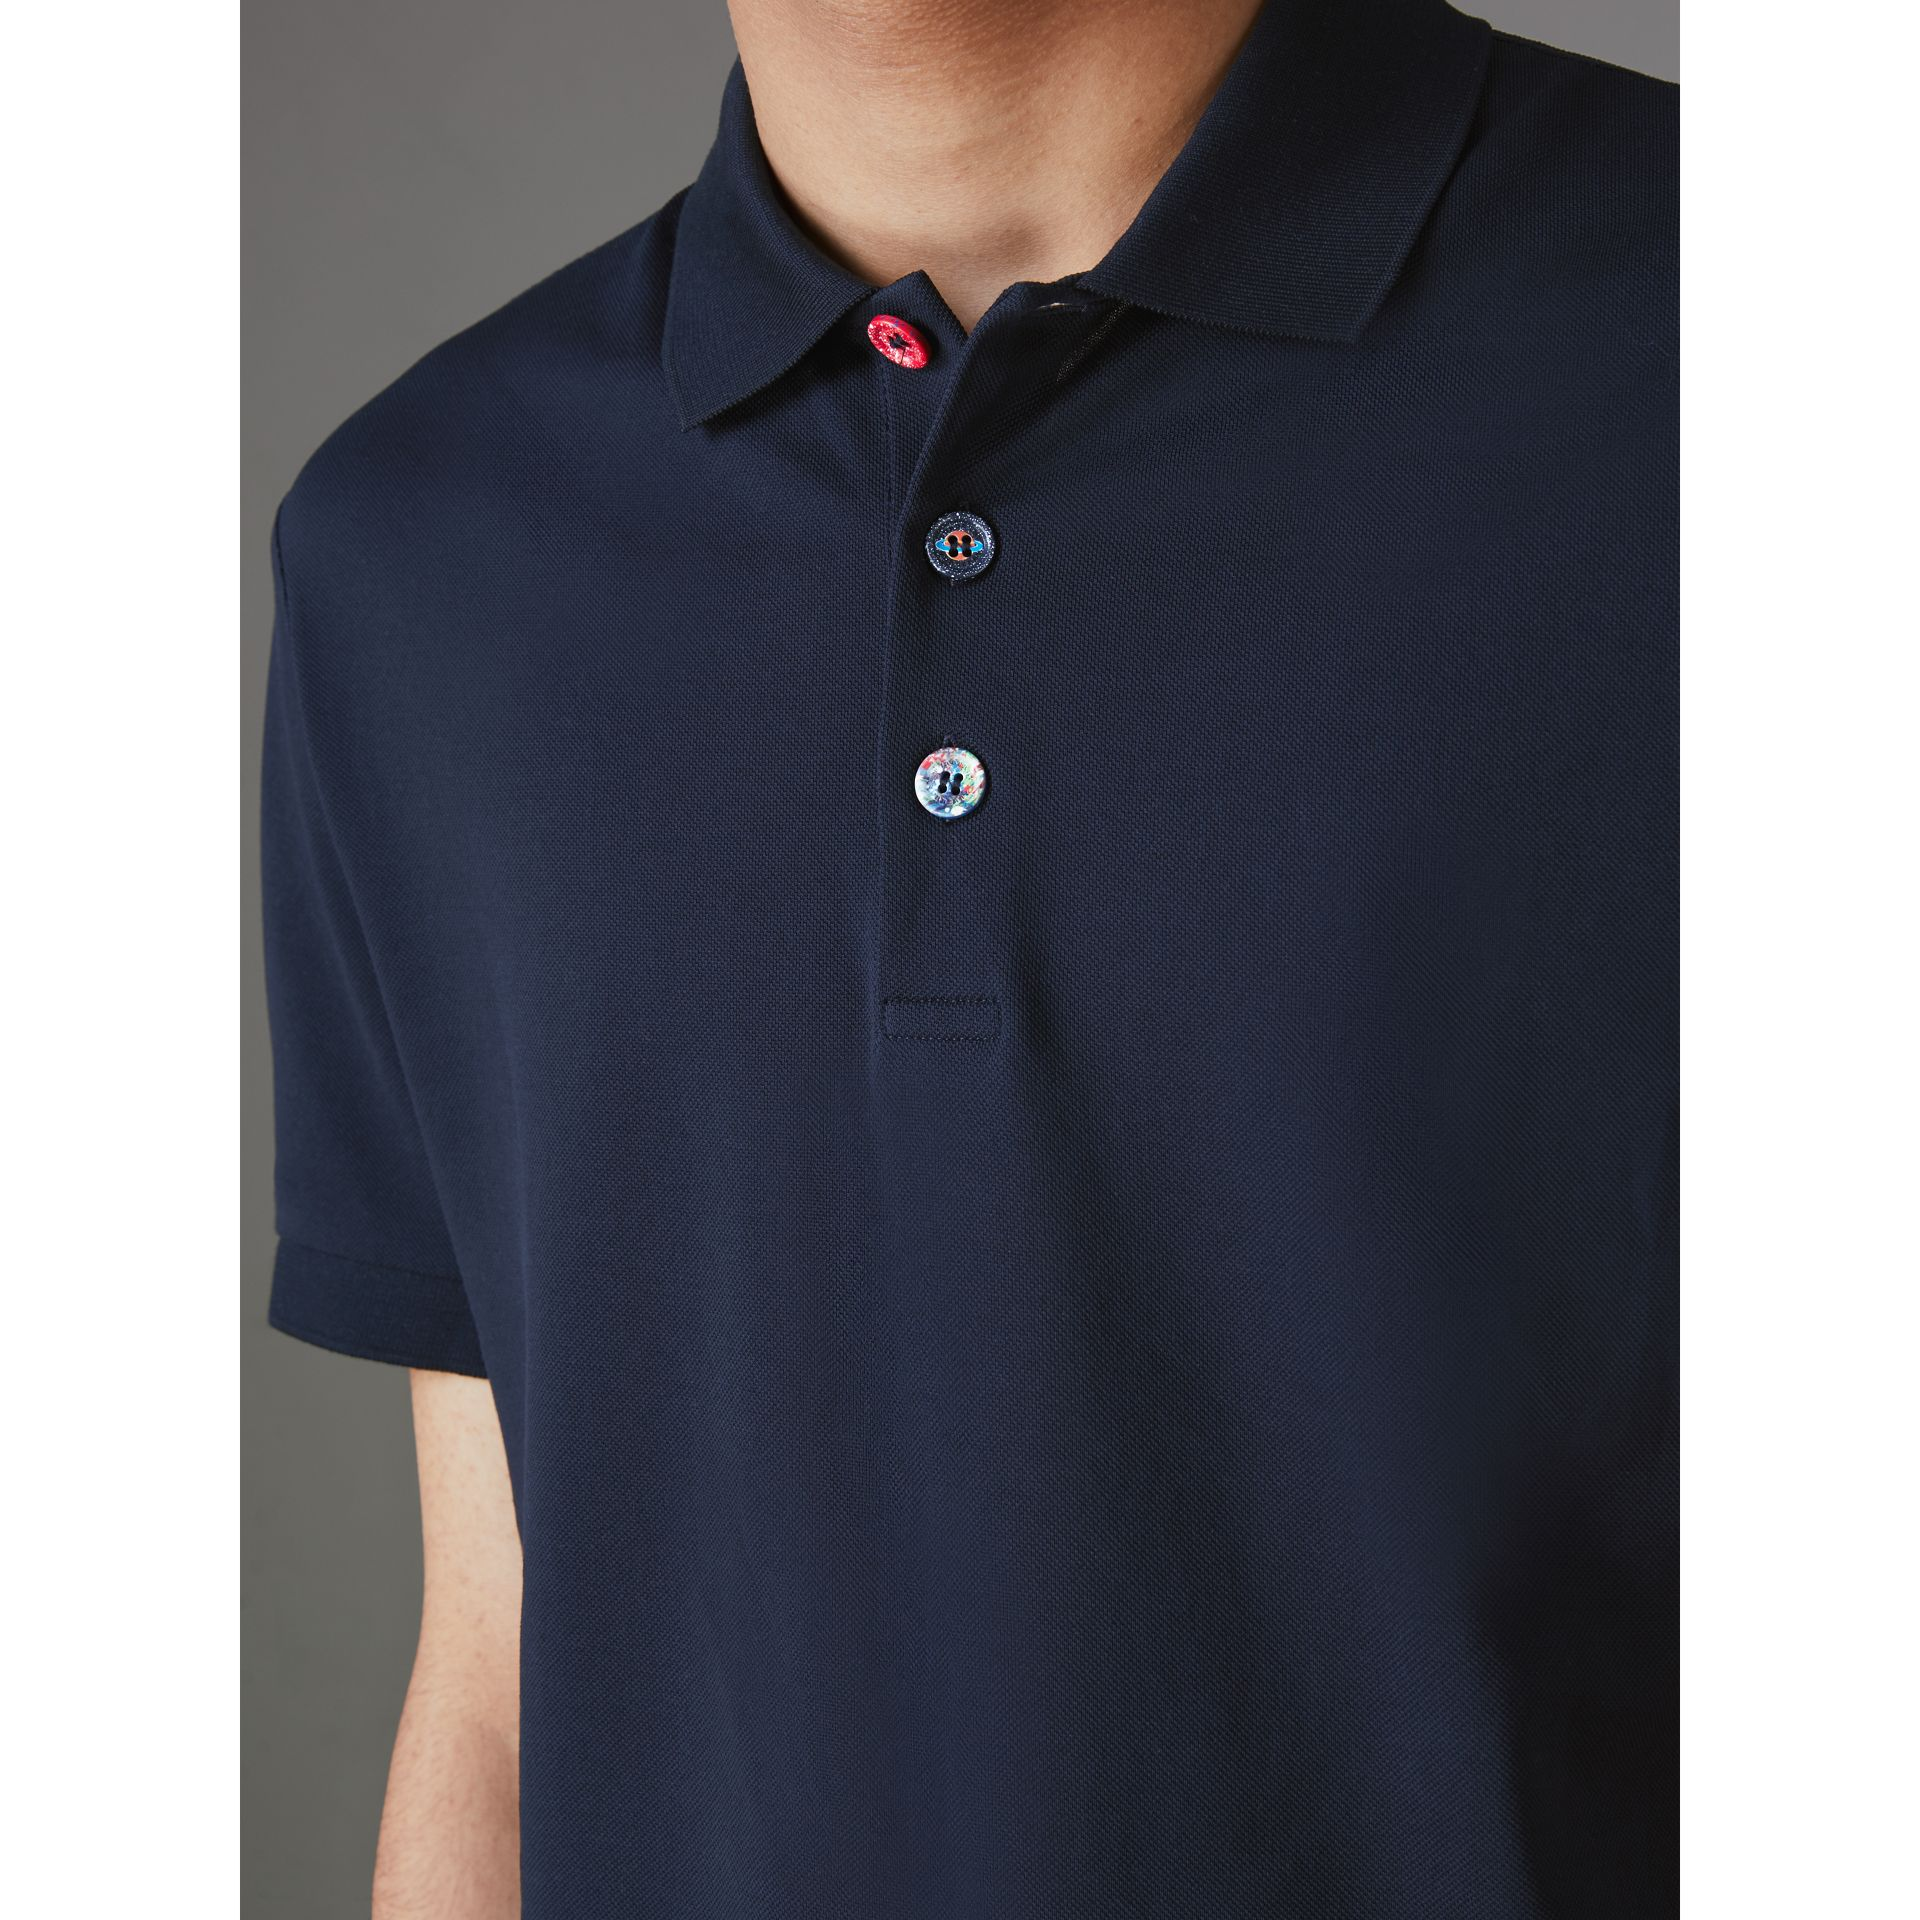 Painted Button Cotton Piqué Polo Shirt in Navy - Men | Burberry Australia - gallery image 1